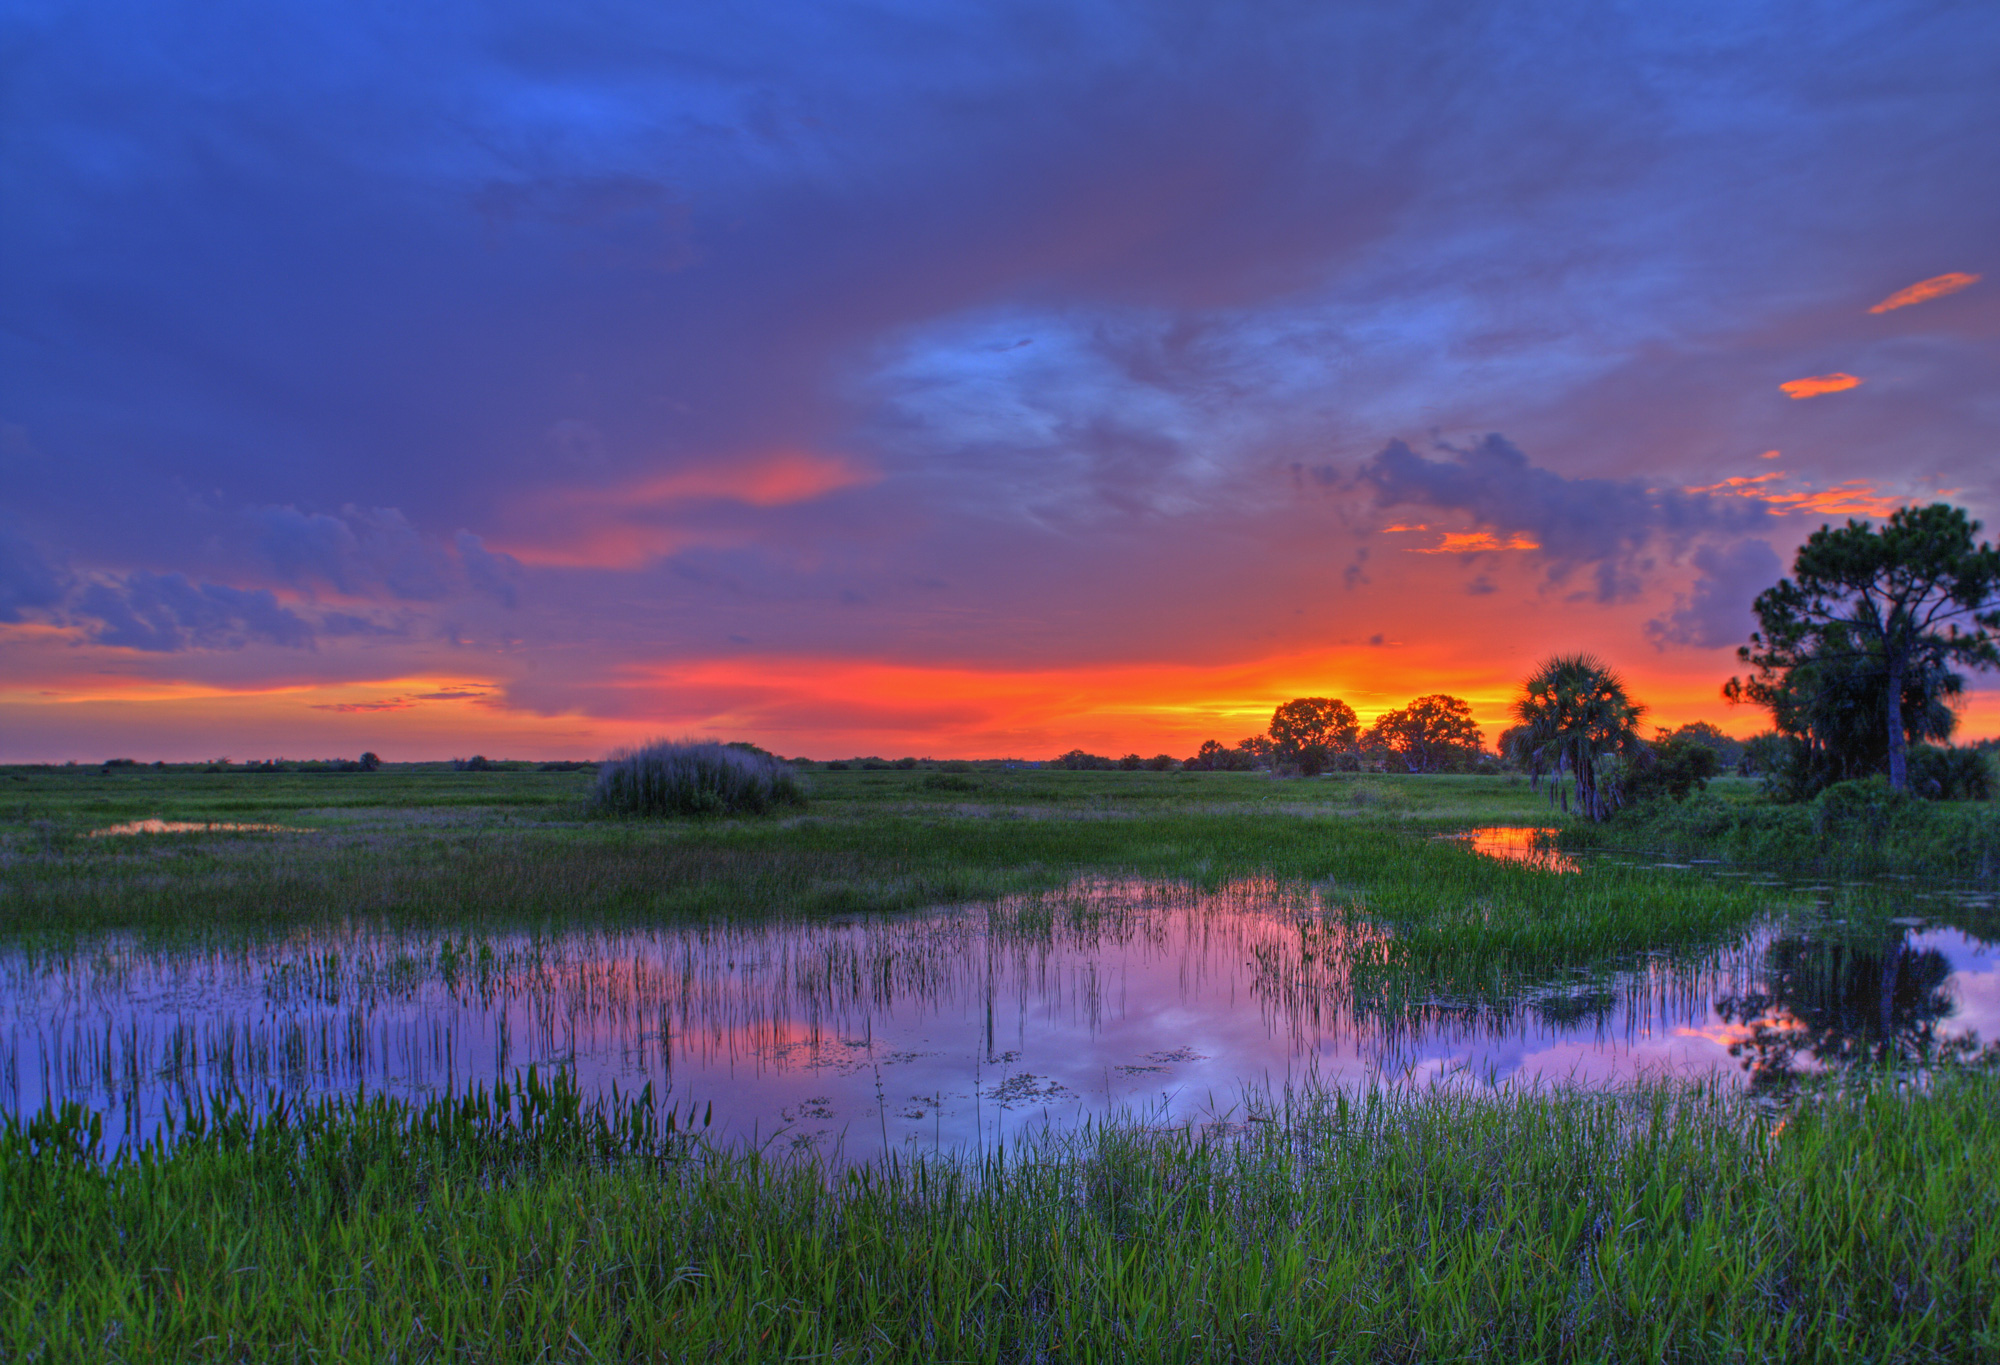 A beautiful sunset in Everglades National Park